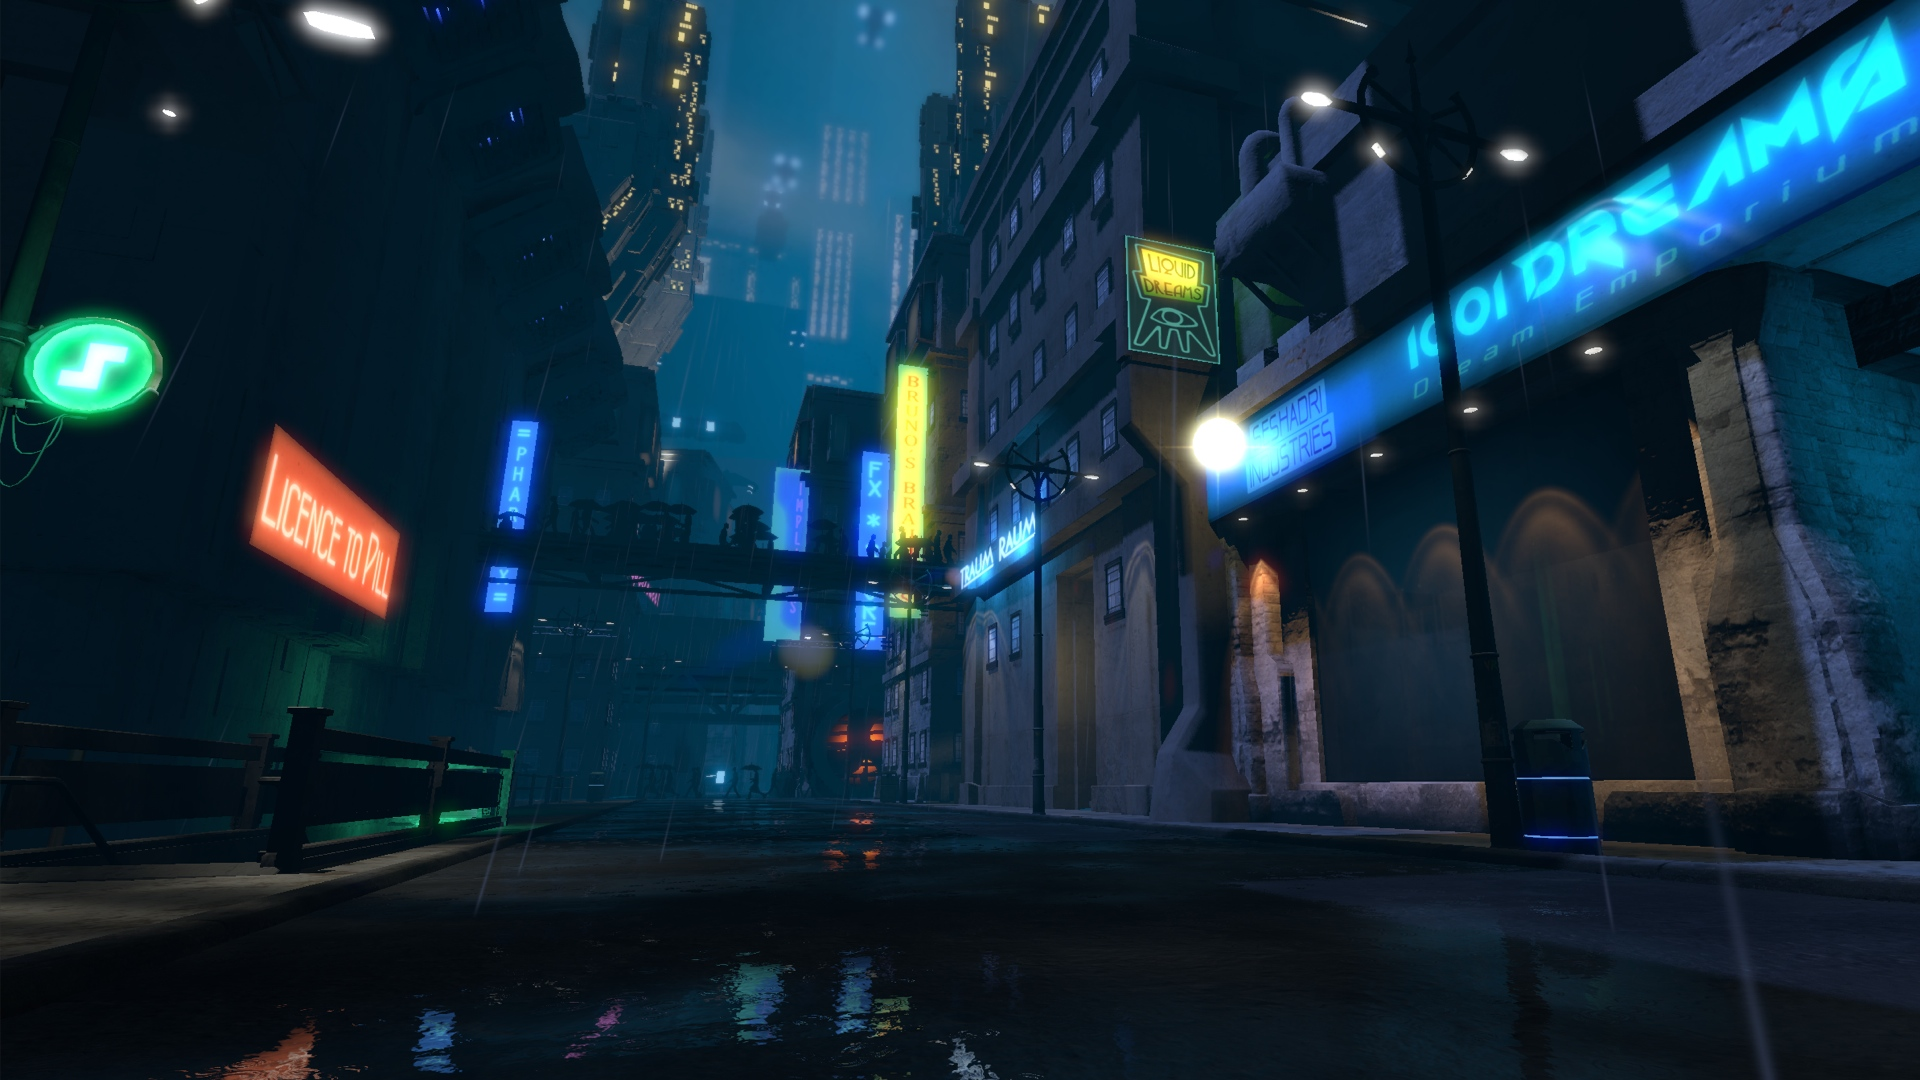 1920x1080 Fall Urban Wallpaper Stark Contrasts Dreamfall Chapters Cyberpunk City Rock